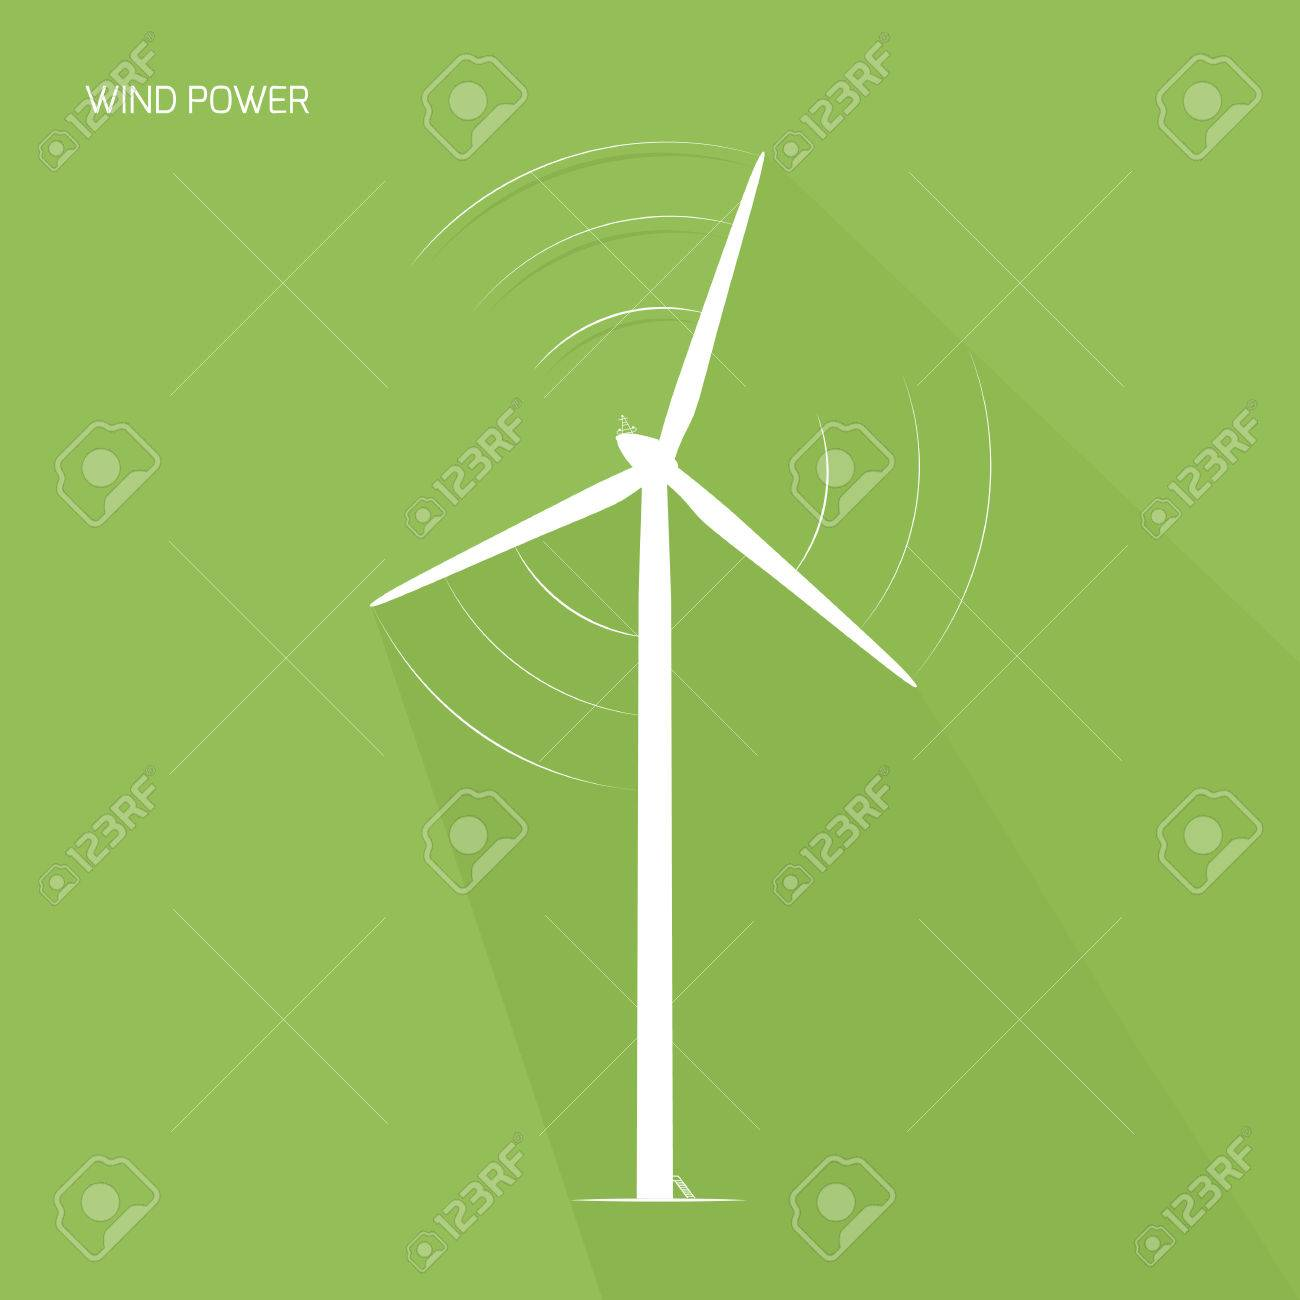 Wind turbine tower renewable ecological energy generation concept logo icon wind turbine tower renewable ecological energy generation concept power plant windmill generator with rotating voltagebd Image collections